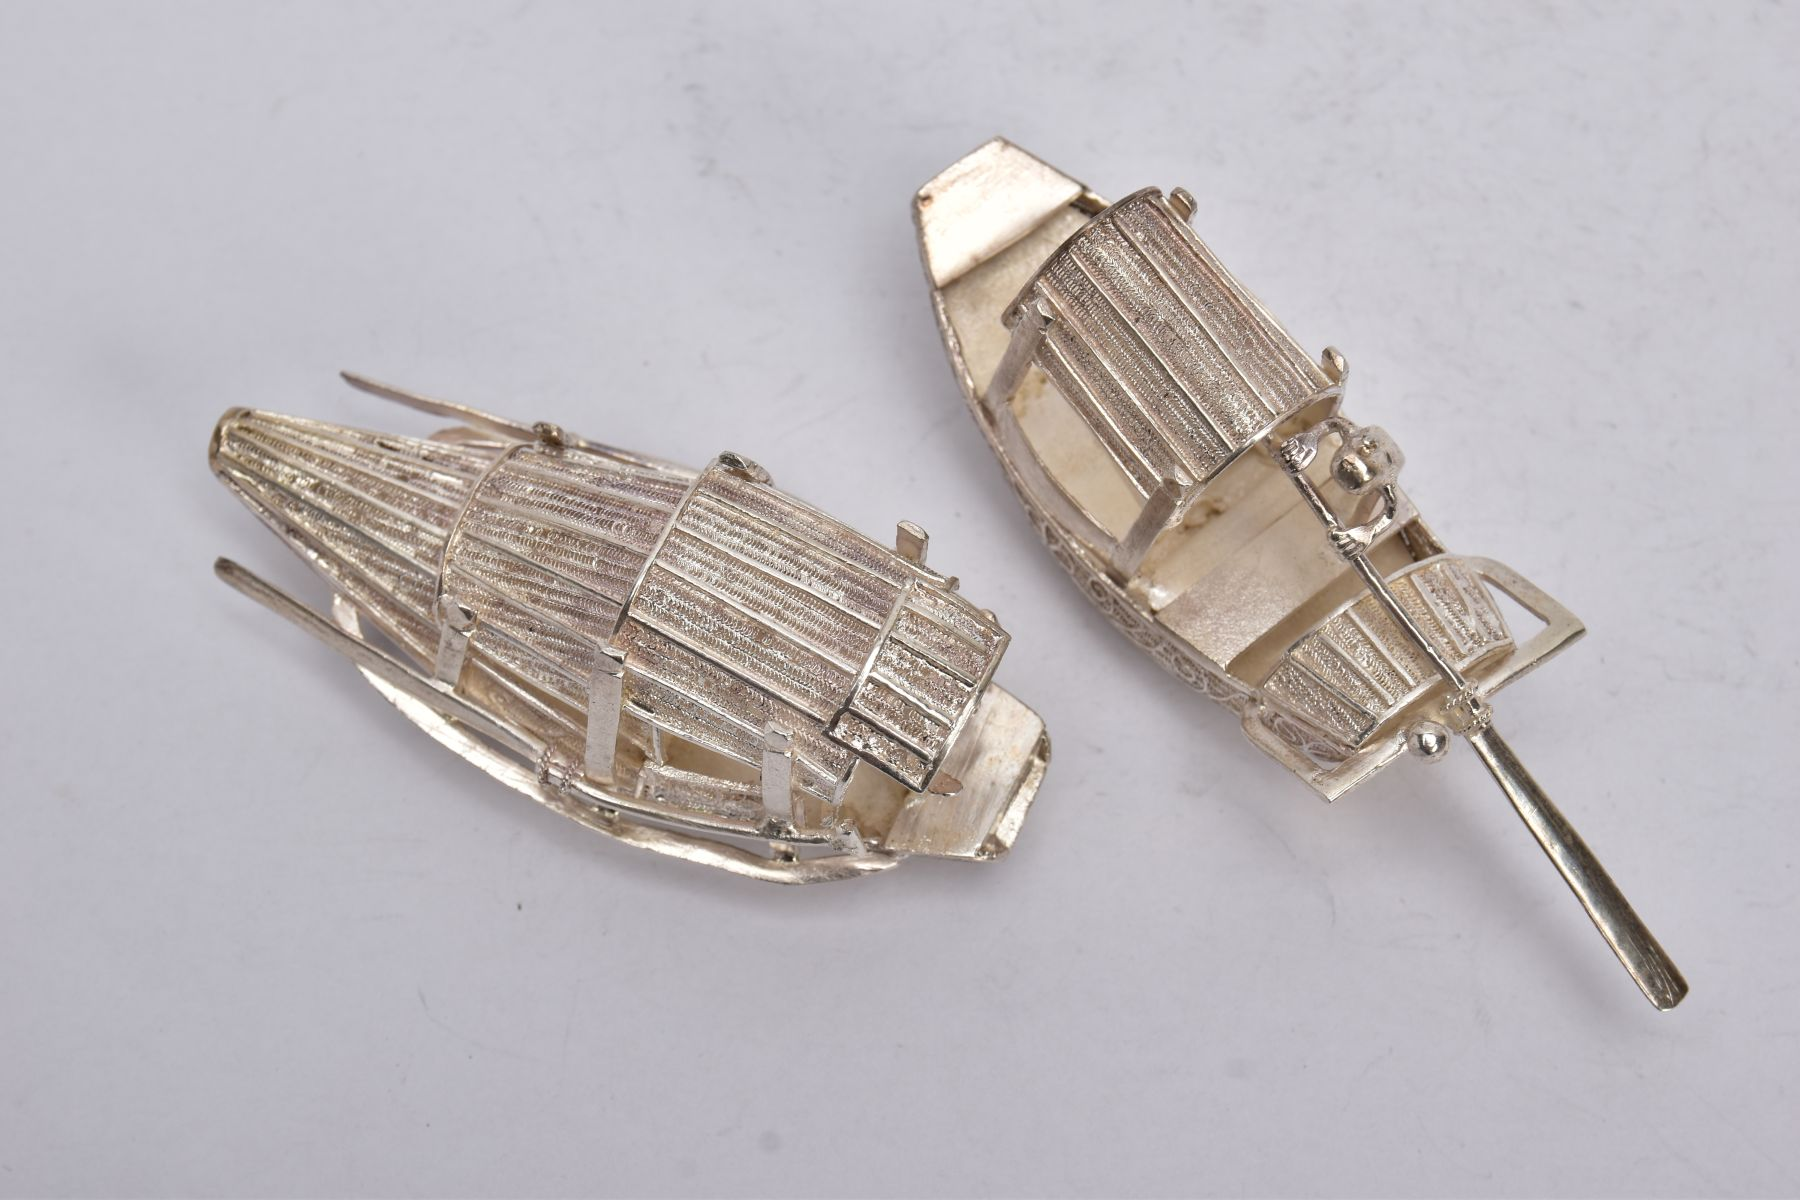 TWO MODERN ORIENTAL, WHITE METAL FILIGREE BOAT ORNAMENTS, one with a standing figure with paddle, - Image 7 of 8